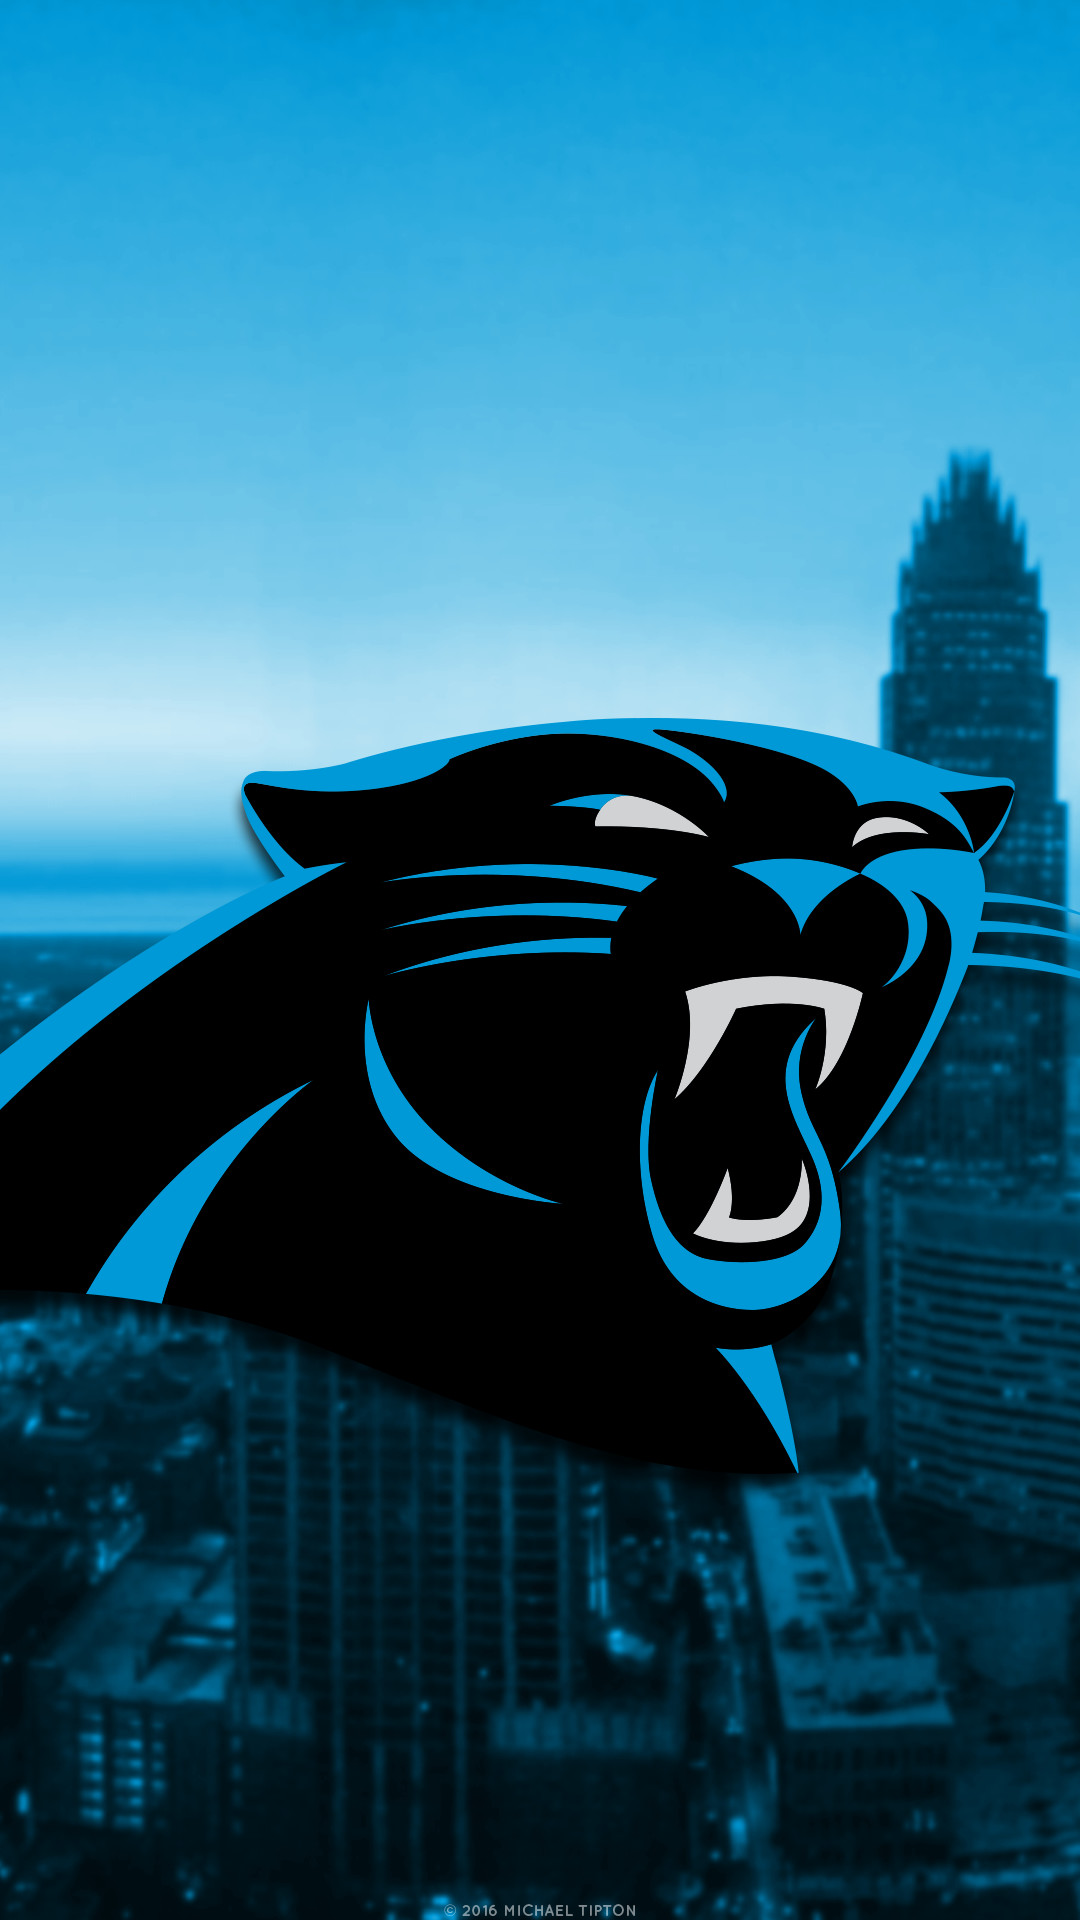 1080x1920 ... galaxy Carolina Panthers city 2017 logo wallpaper free iphone 5, 6, 7,  galaxy s6